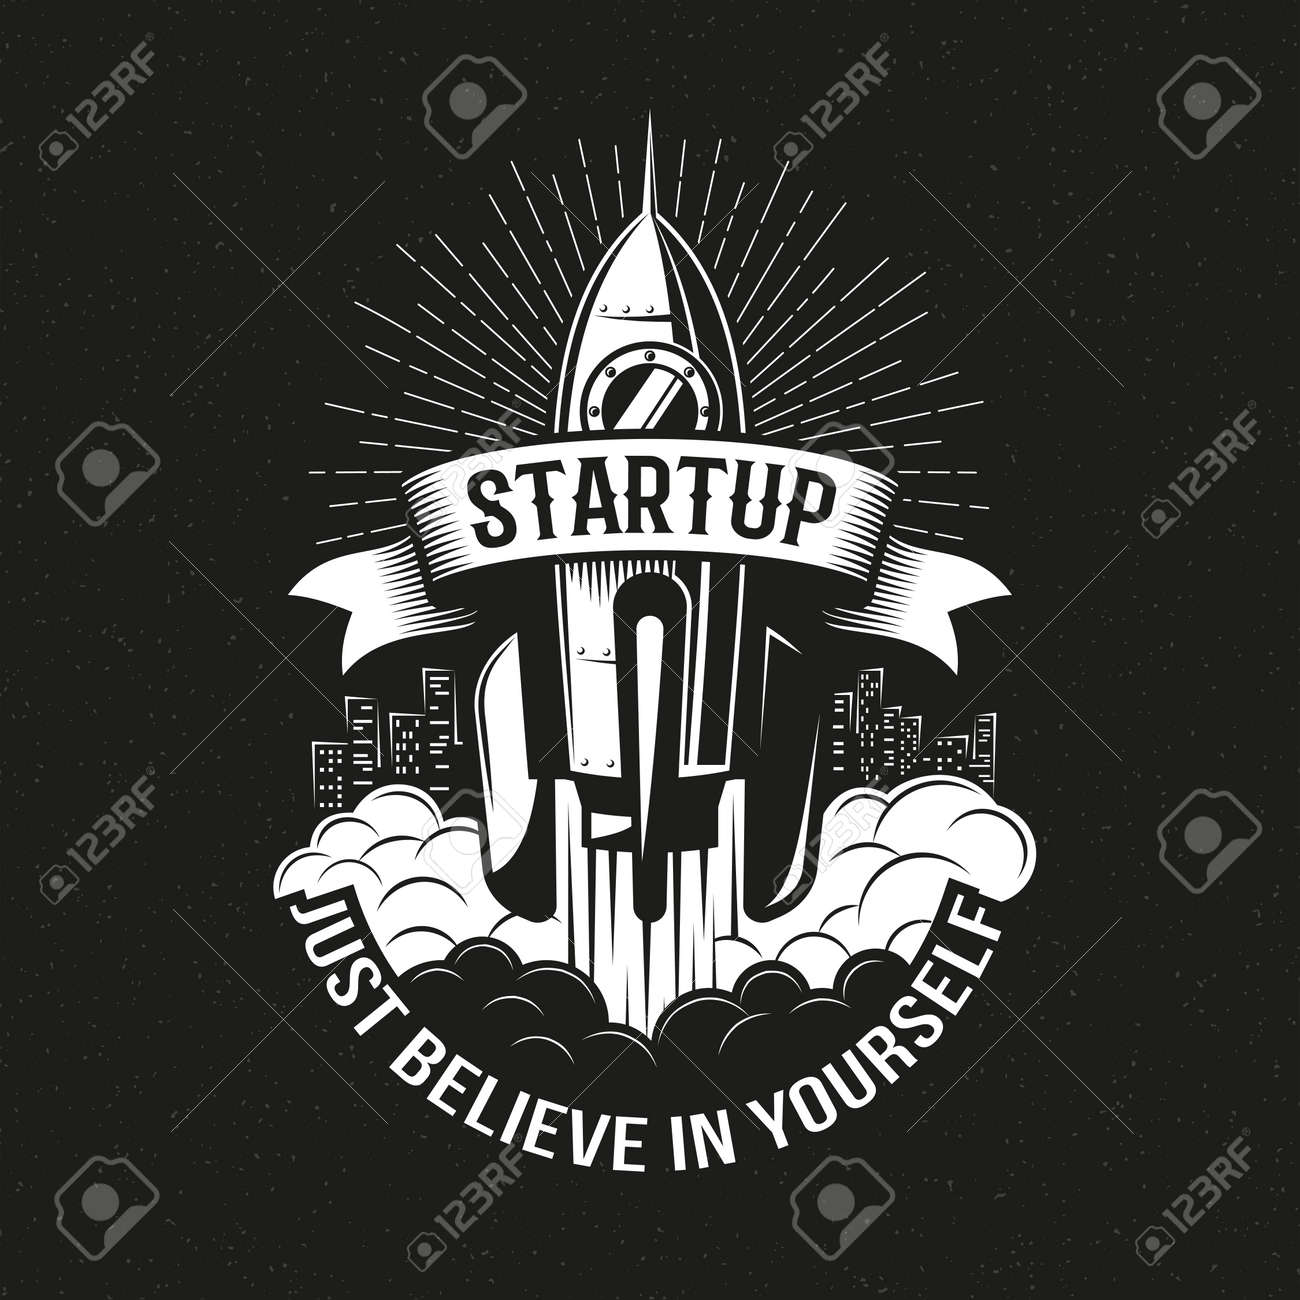 Startup vintage logo with a rocket taking off over the city on a black background. Vector illustration. Stock Vector - 85126993